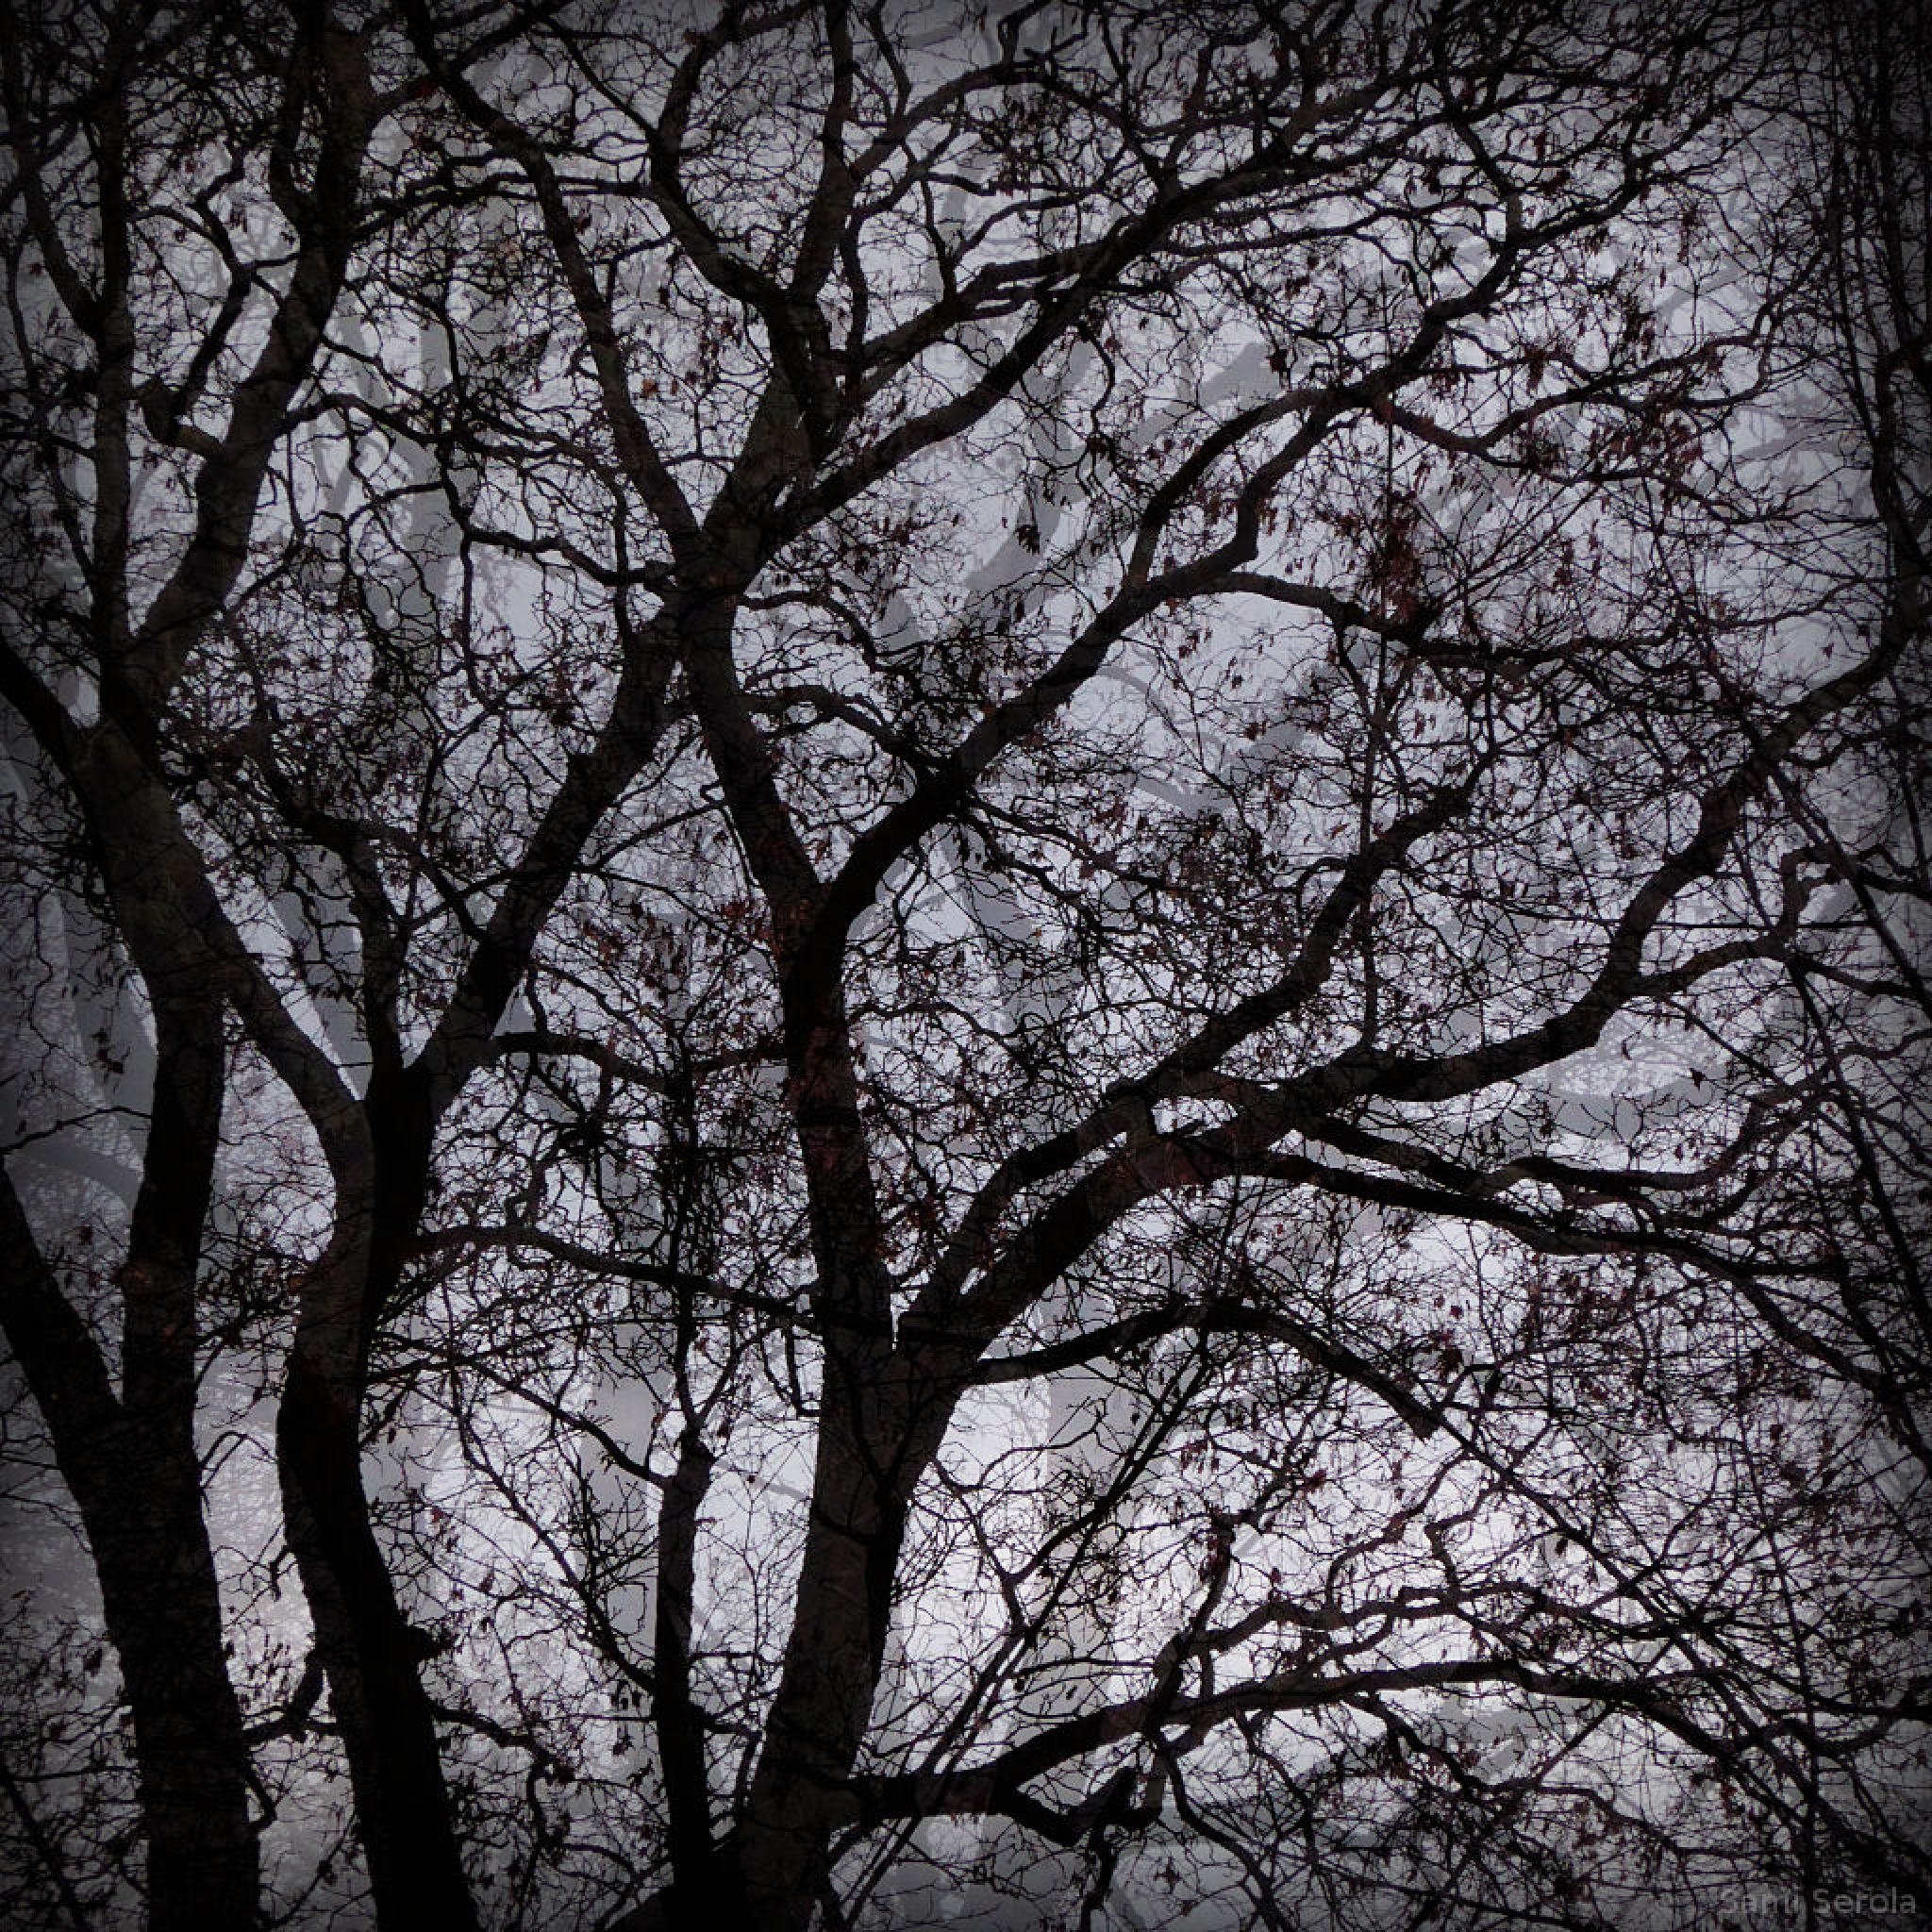 Trees in the park by Sami Serola